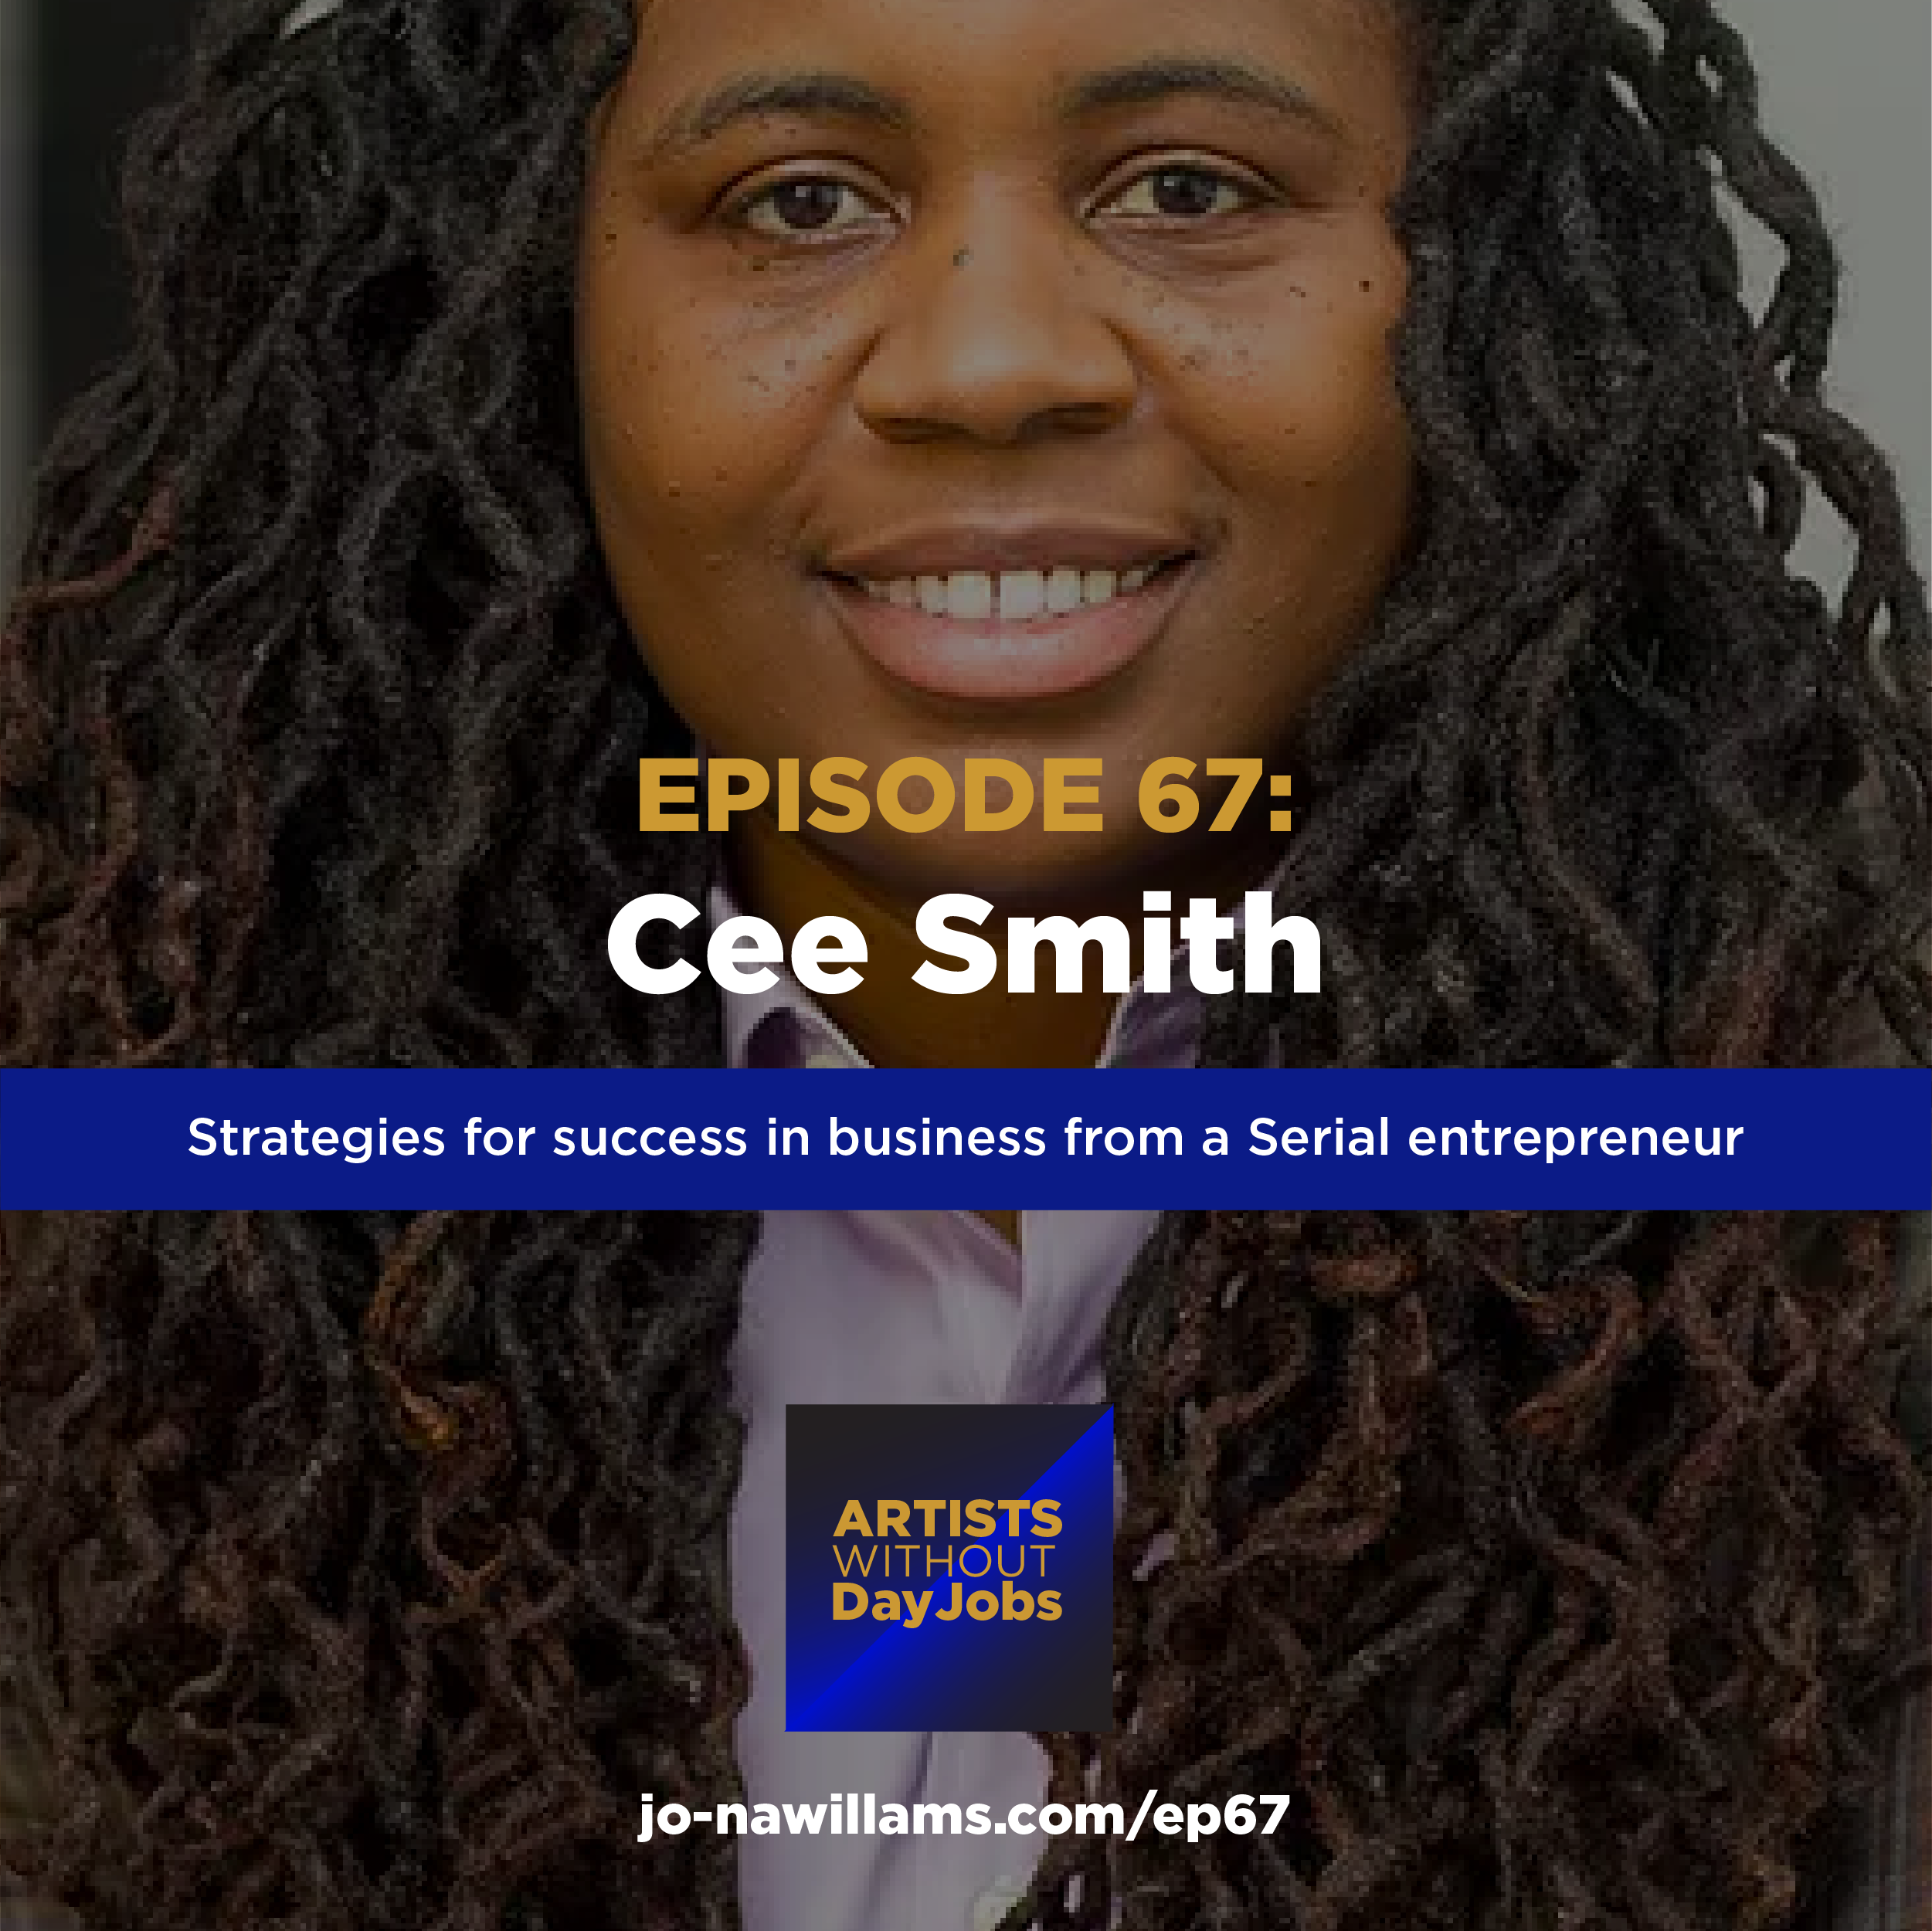 Ep 67: Strategies for success in business from a Serial entrepreneur w/ Cee Smith